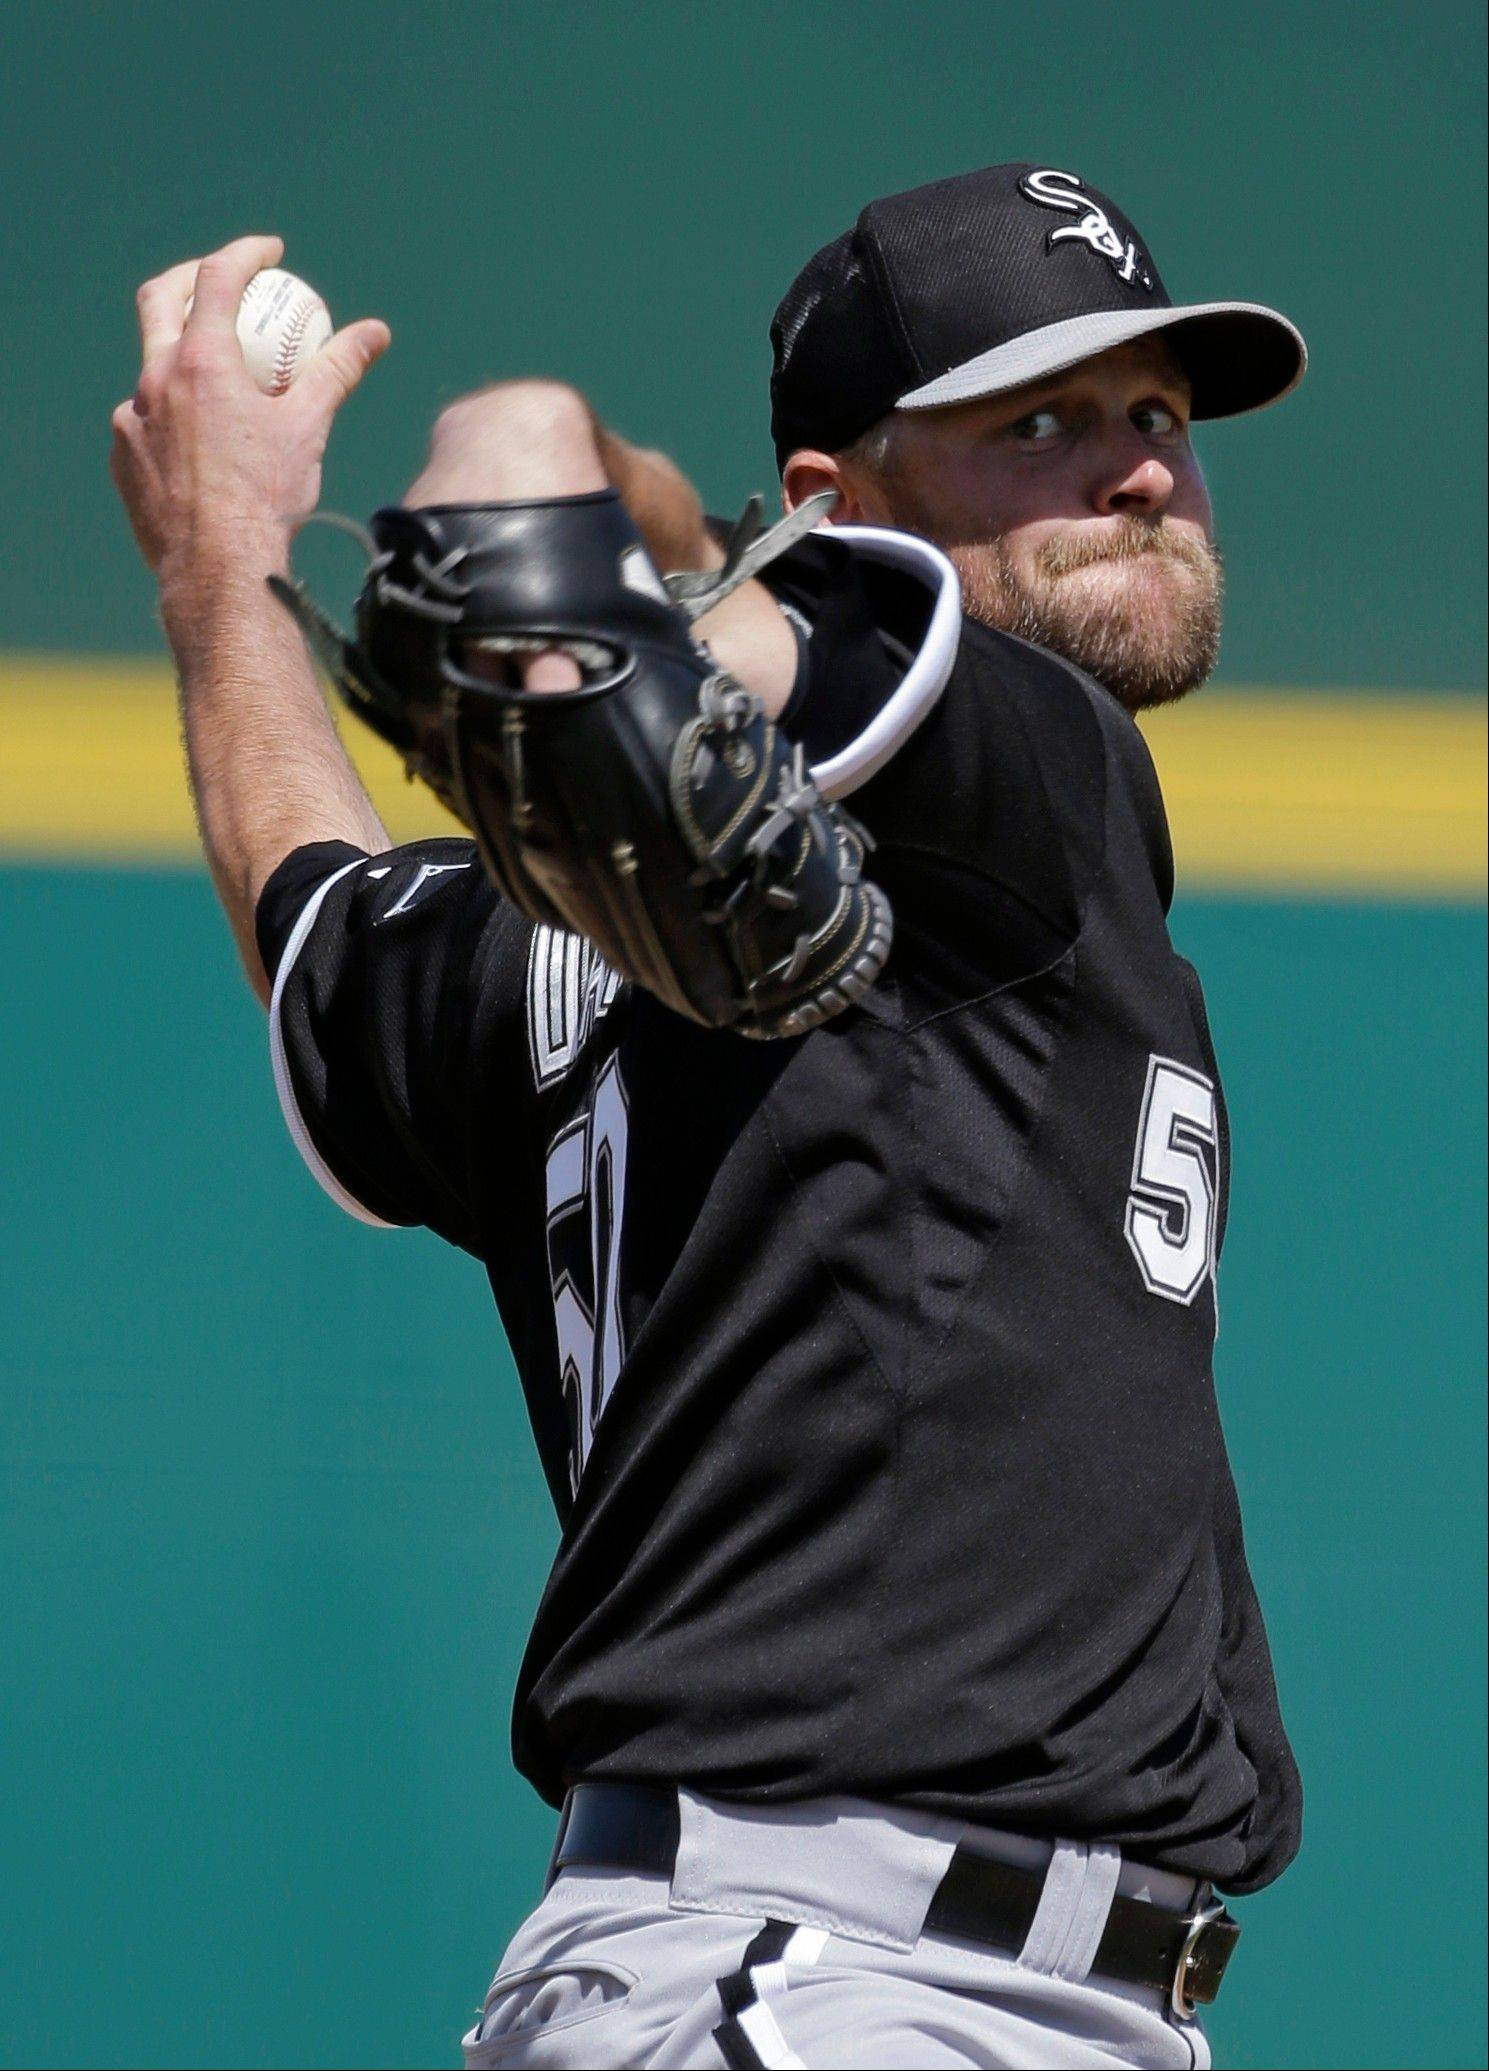 Danks will start season on the DL